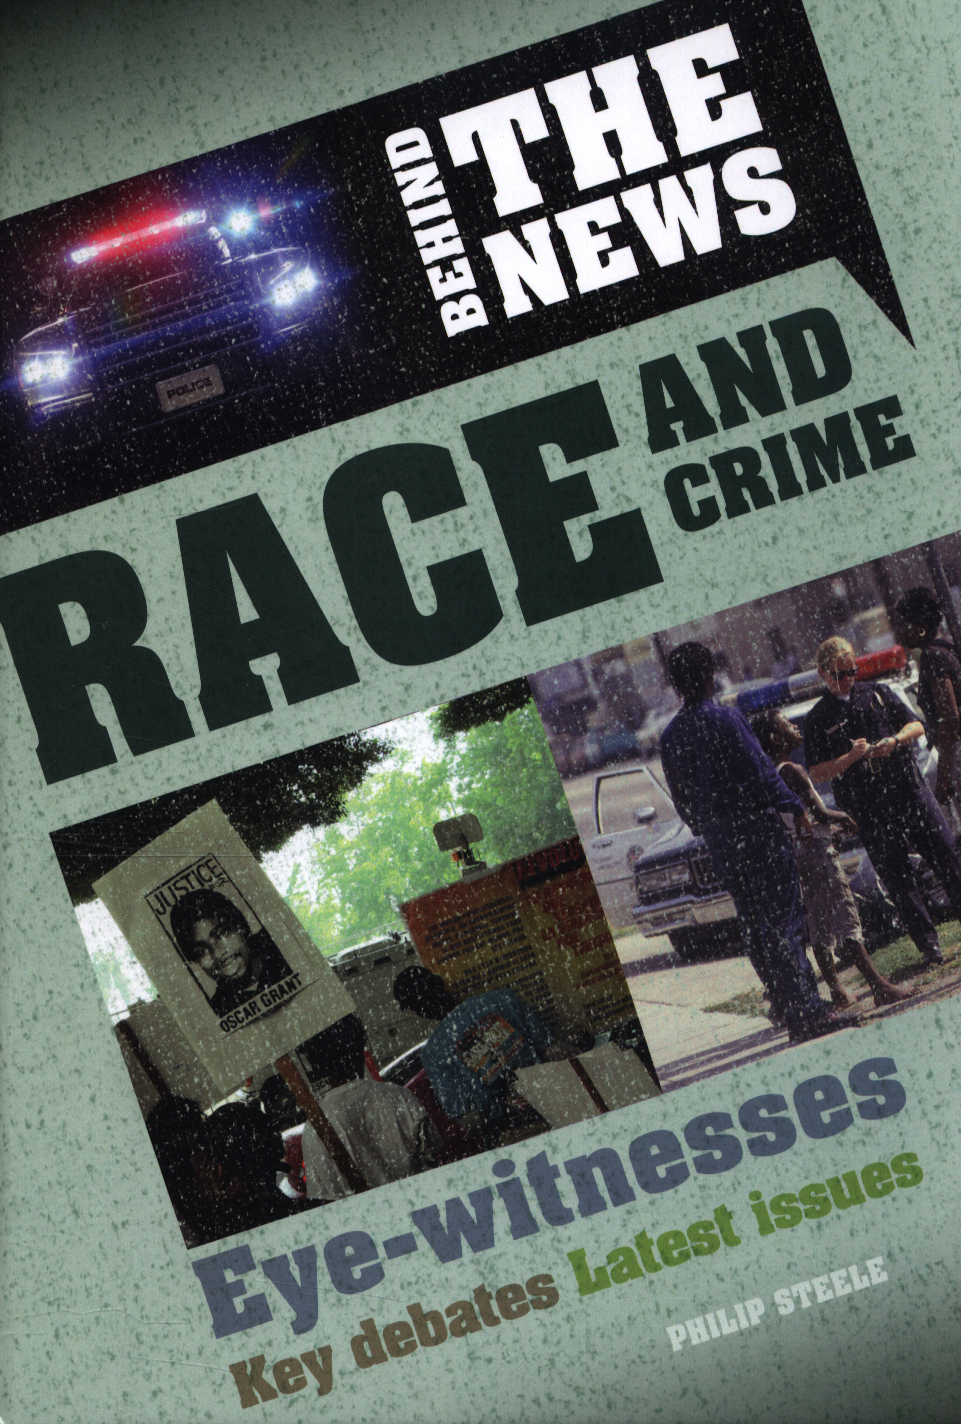 race crime Race, crime, and the law has 95 ratings and 7 reviews david said: although certain lengths of this book can be dry (especially the legal history stuff).